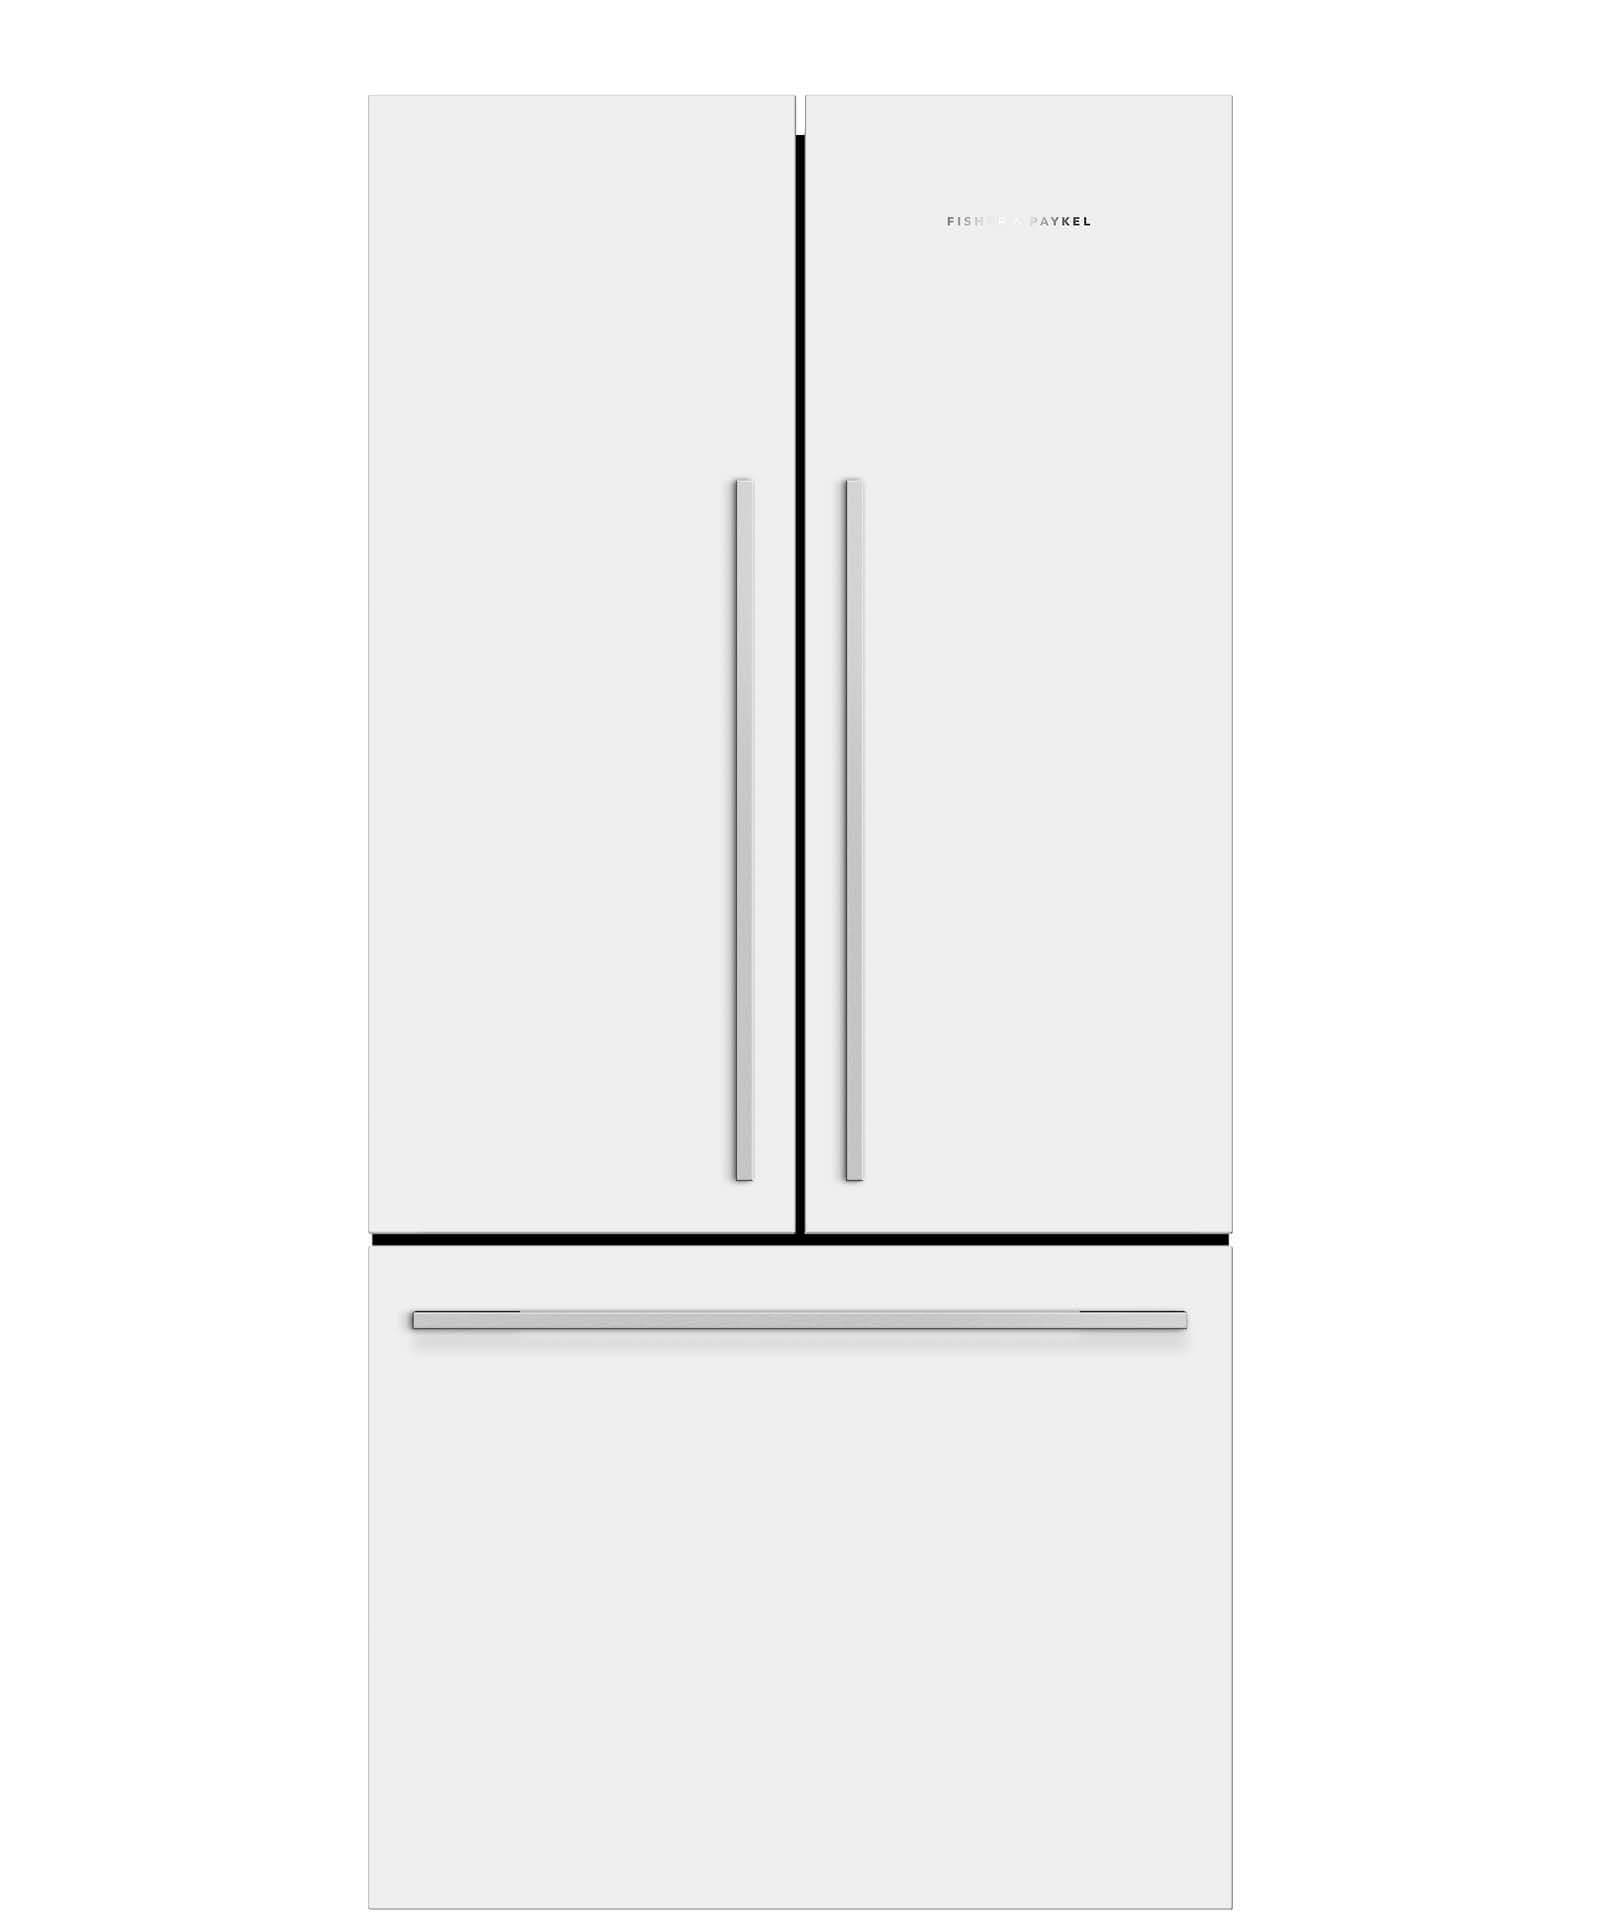 white french door refrigerator. RF522ADW5 - ActiveSmart™ Fridge 790mm French Door 519L 25088 White Refrigerator